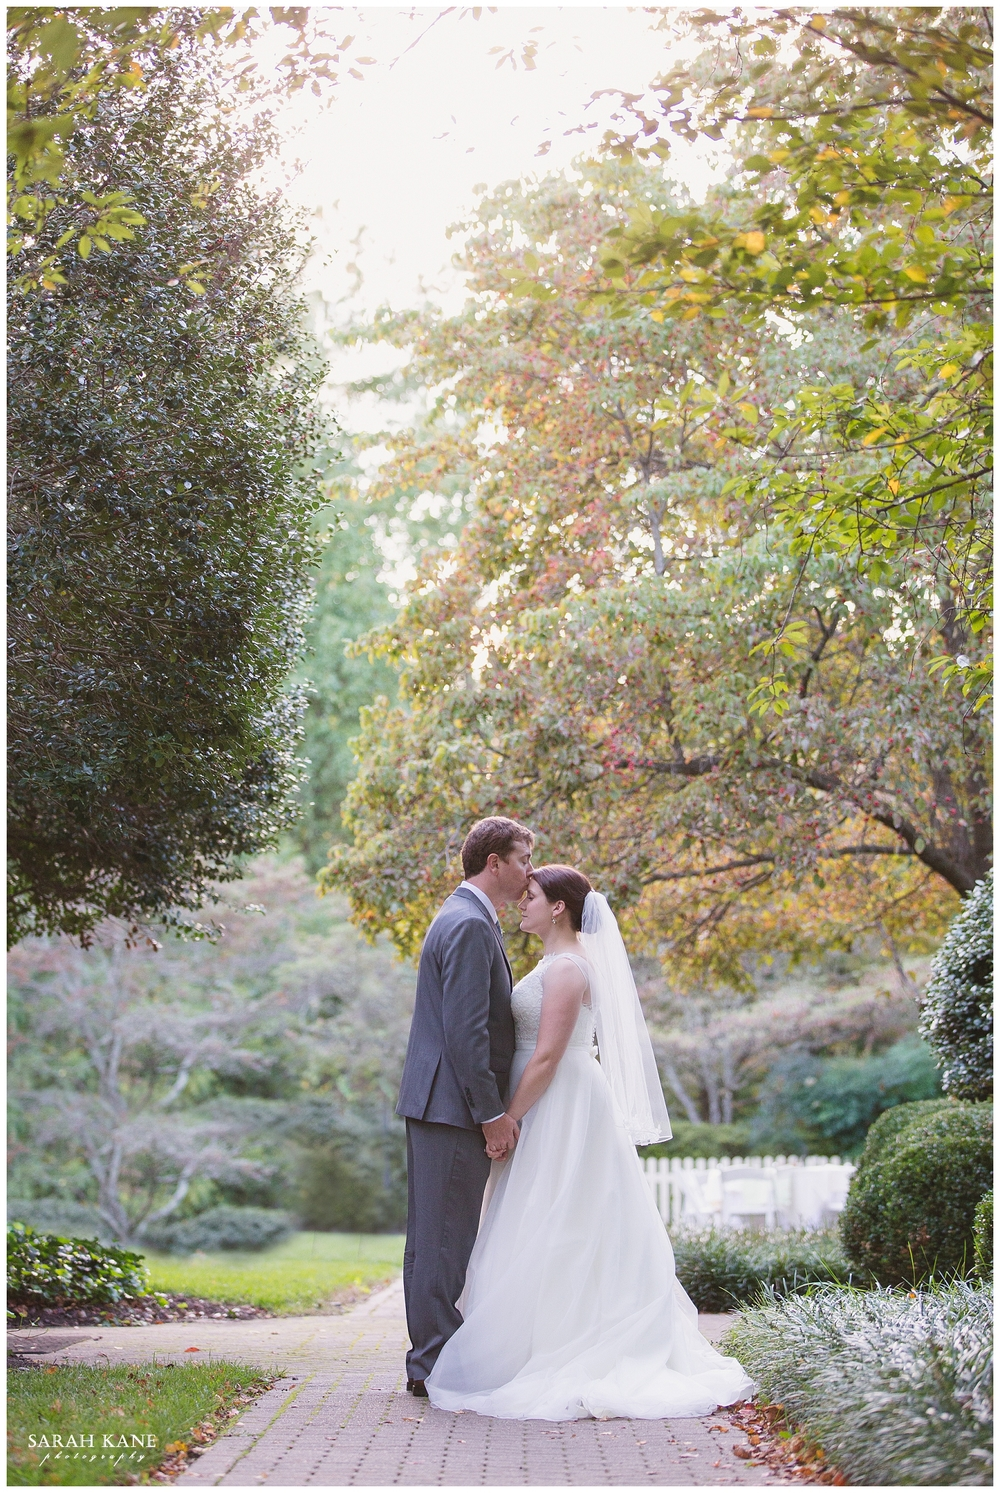 Wedding at The Monor House at Kings Charter in Mechanicsville VA | Sarah Kane Photography